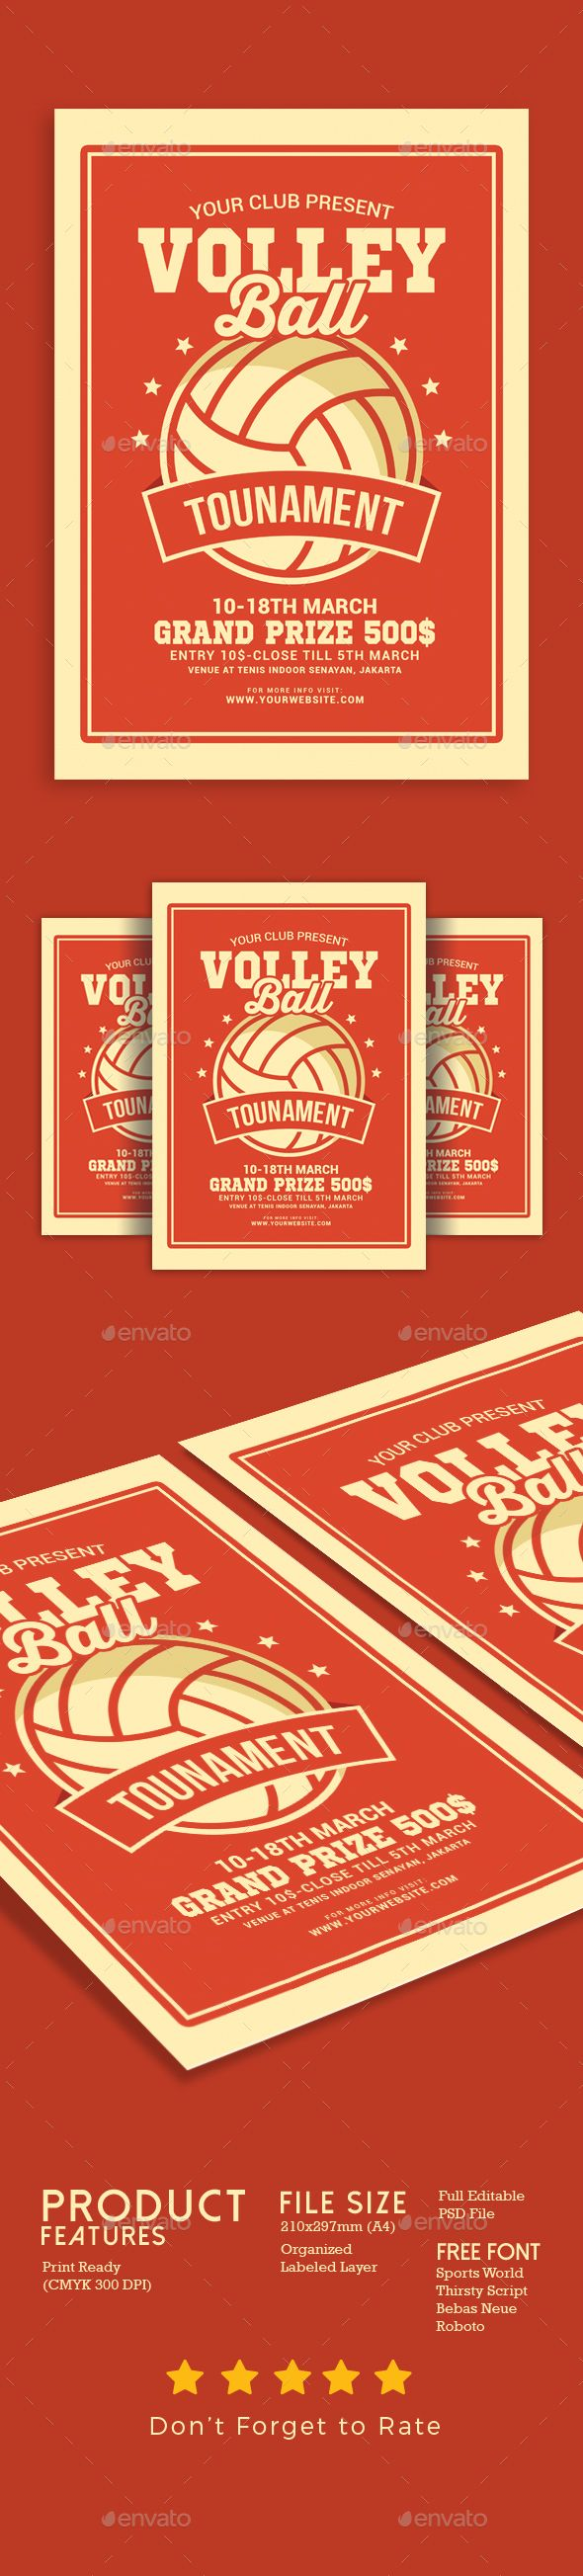 Volleyball Tournament Flyer Volleyball Tournaments Volleyball Posters Volleyball